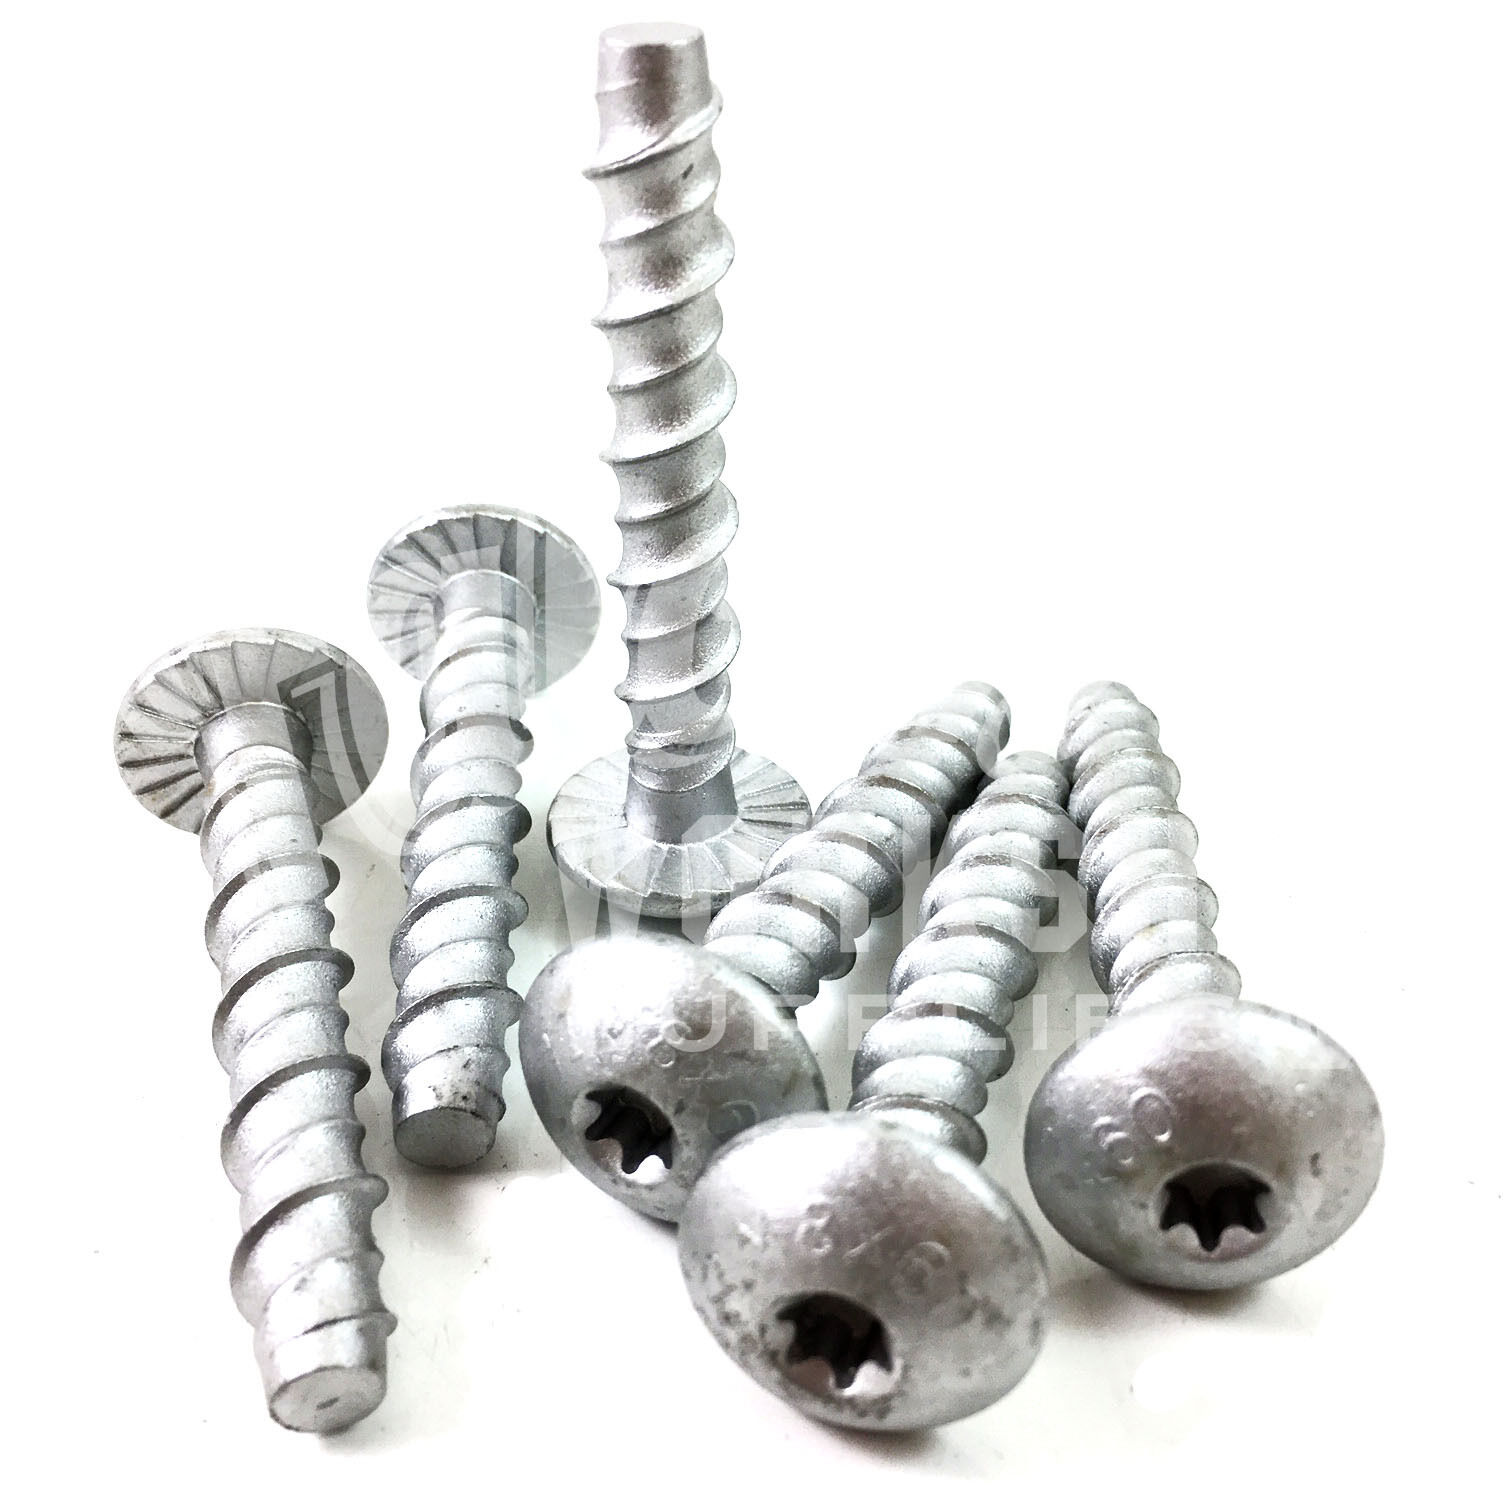 M8 M10  TIMCO MASONRY PAN HEAD MULTI FIX BOLT SCREW ANCHOR FIXING THUNDERR BOLT